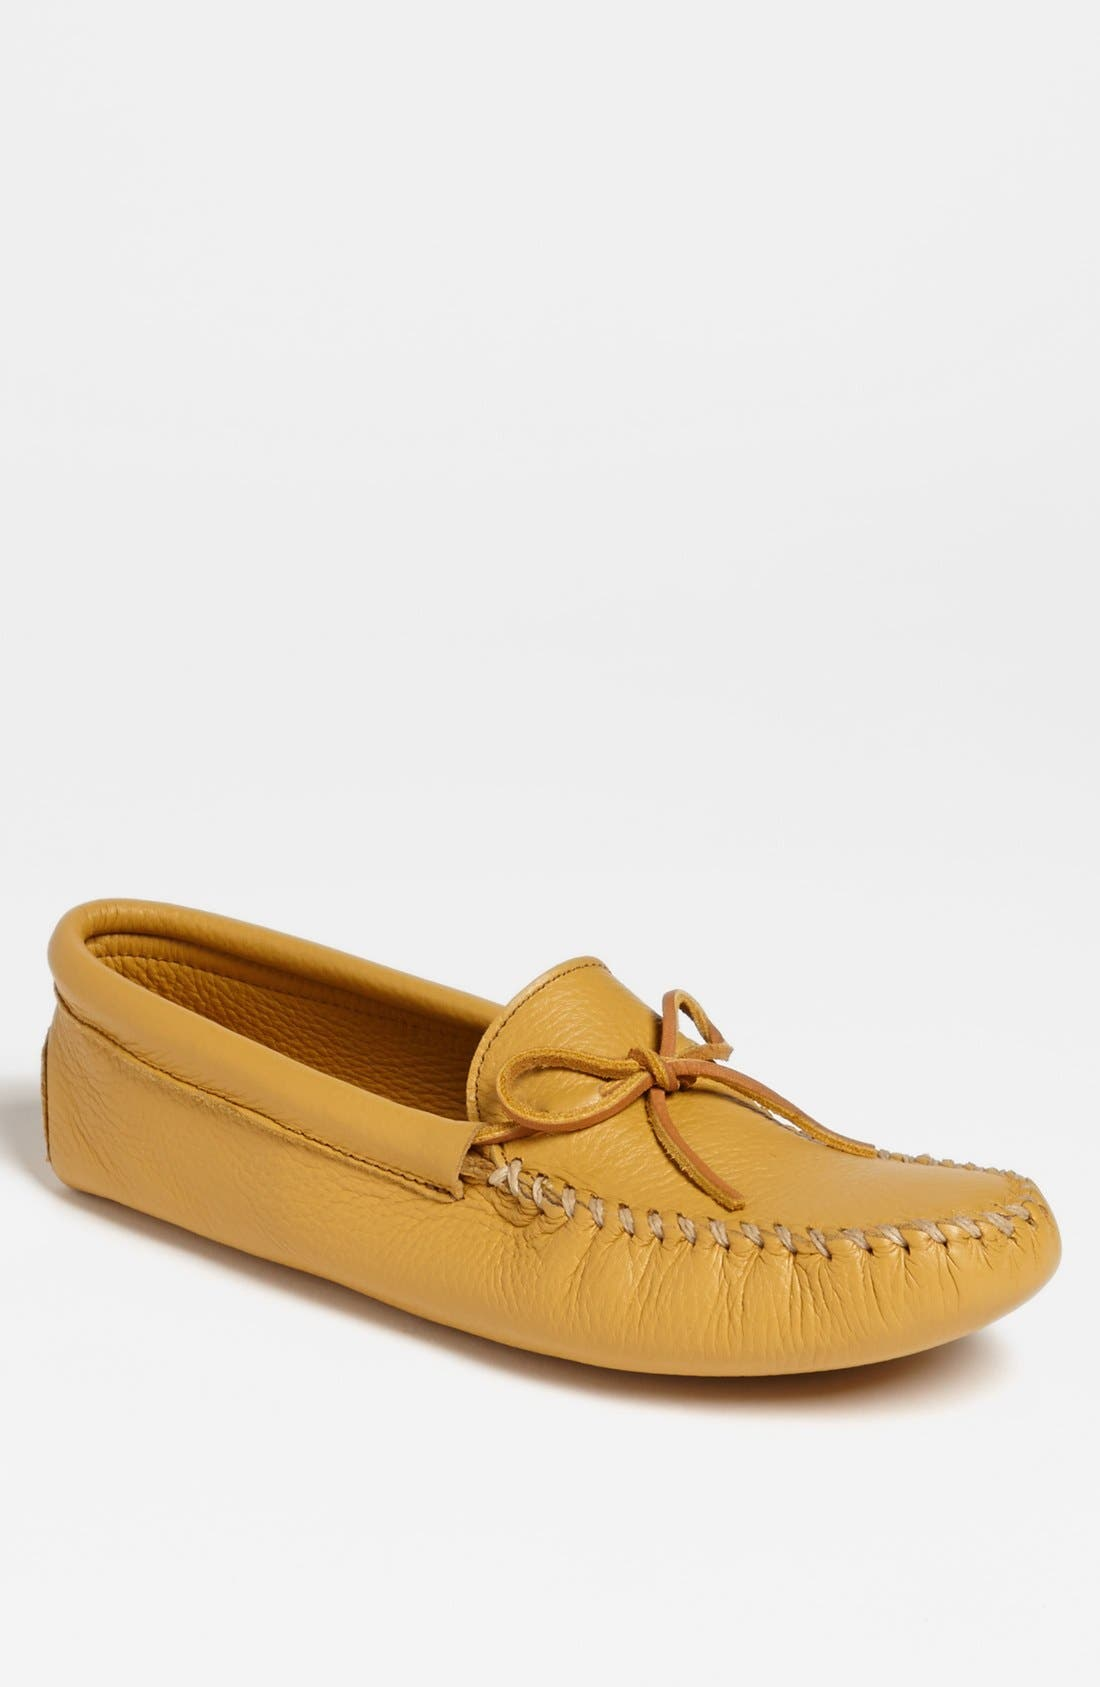 MINNETONKA Deerskin Moccasin, Main, color, NATURAL DEERSKIN